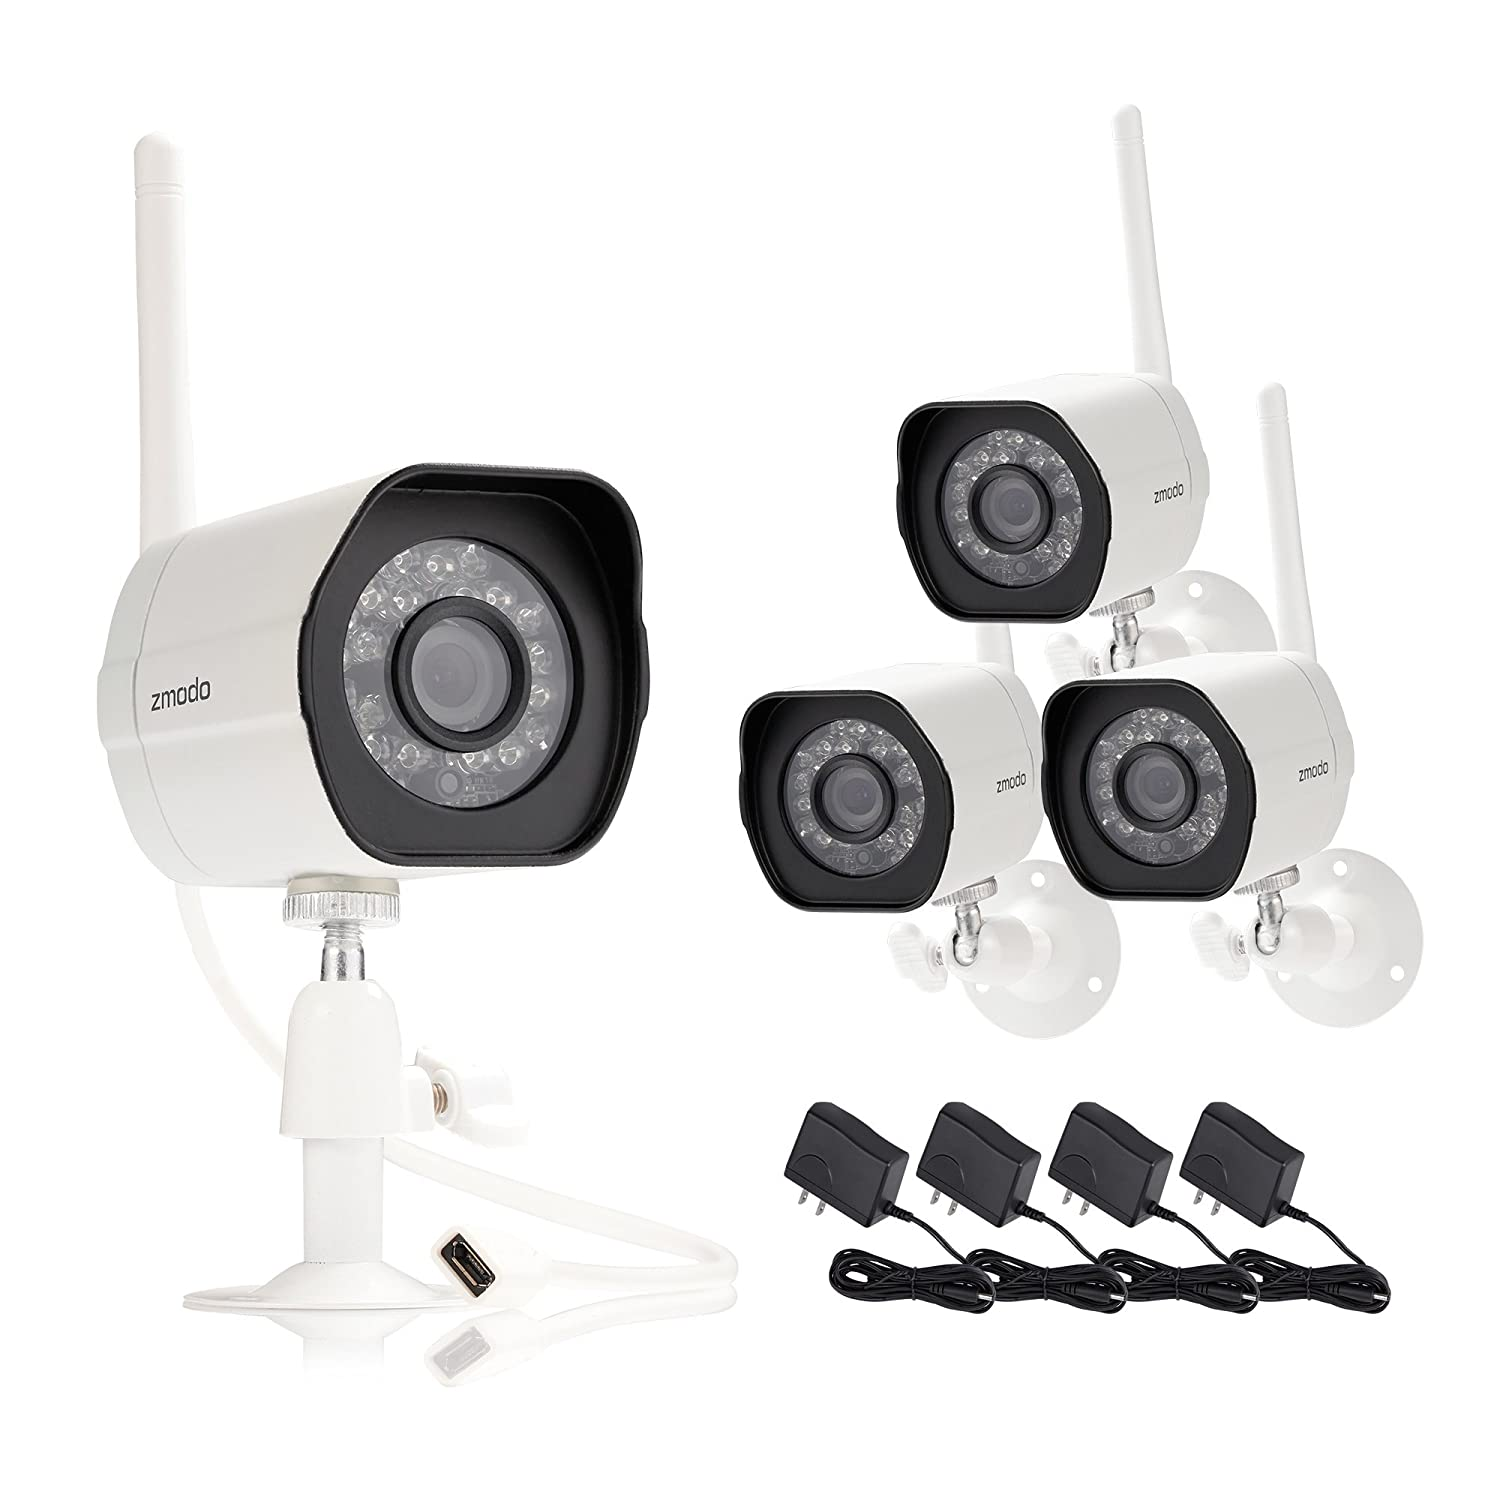 Amazon.com : Zmodo Smart Wireless Security Cameras- 4 Pack- HD Indoor/Outdoor WiFi IP Cameras with Night Vision Easy Remote Access